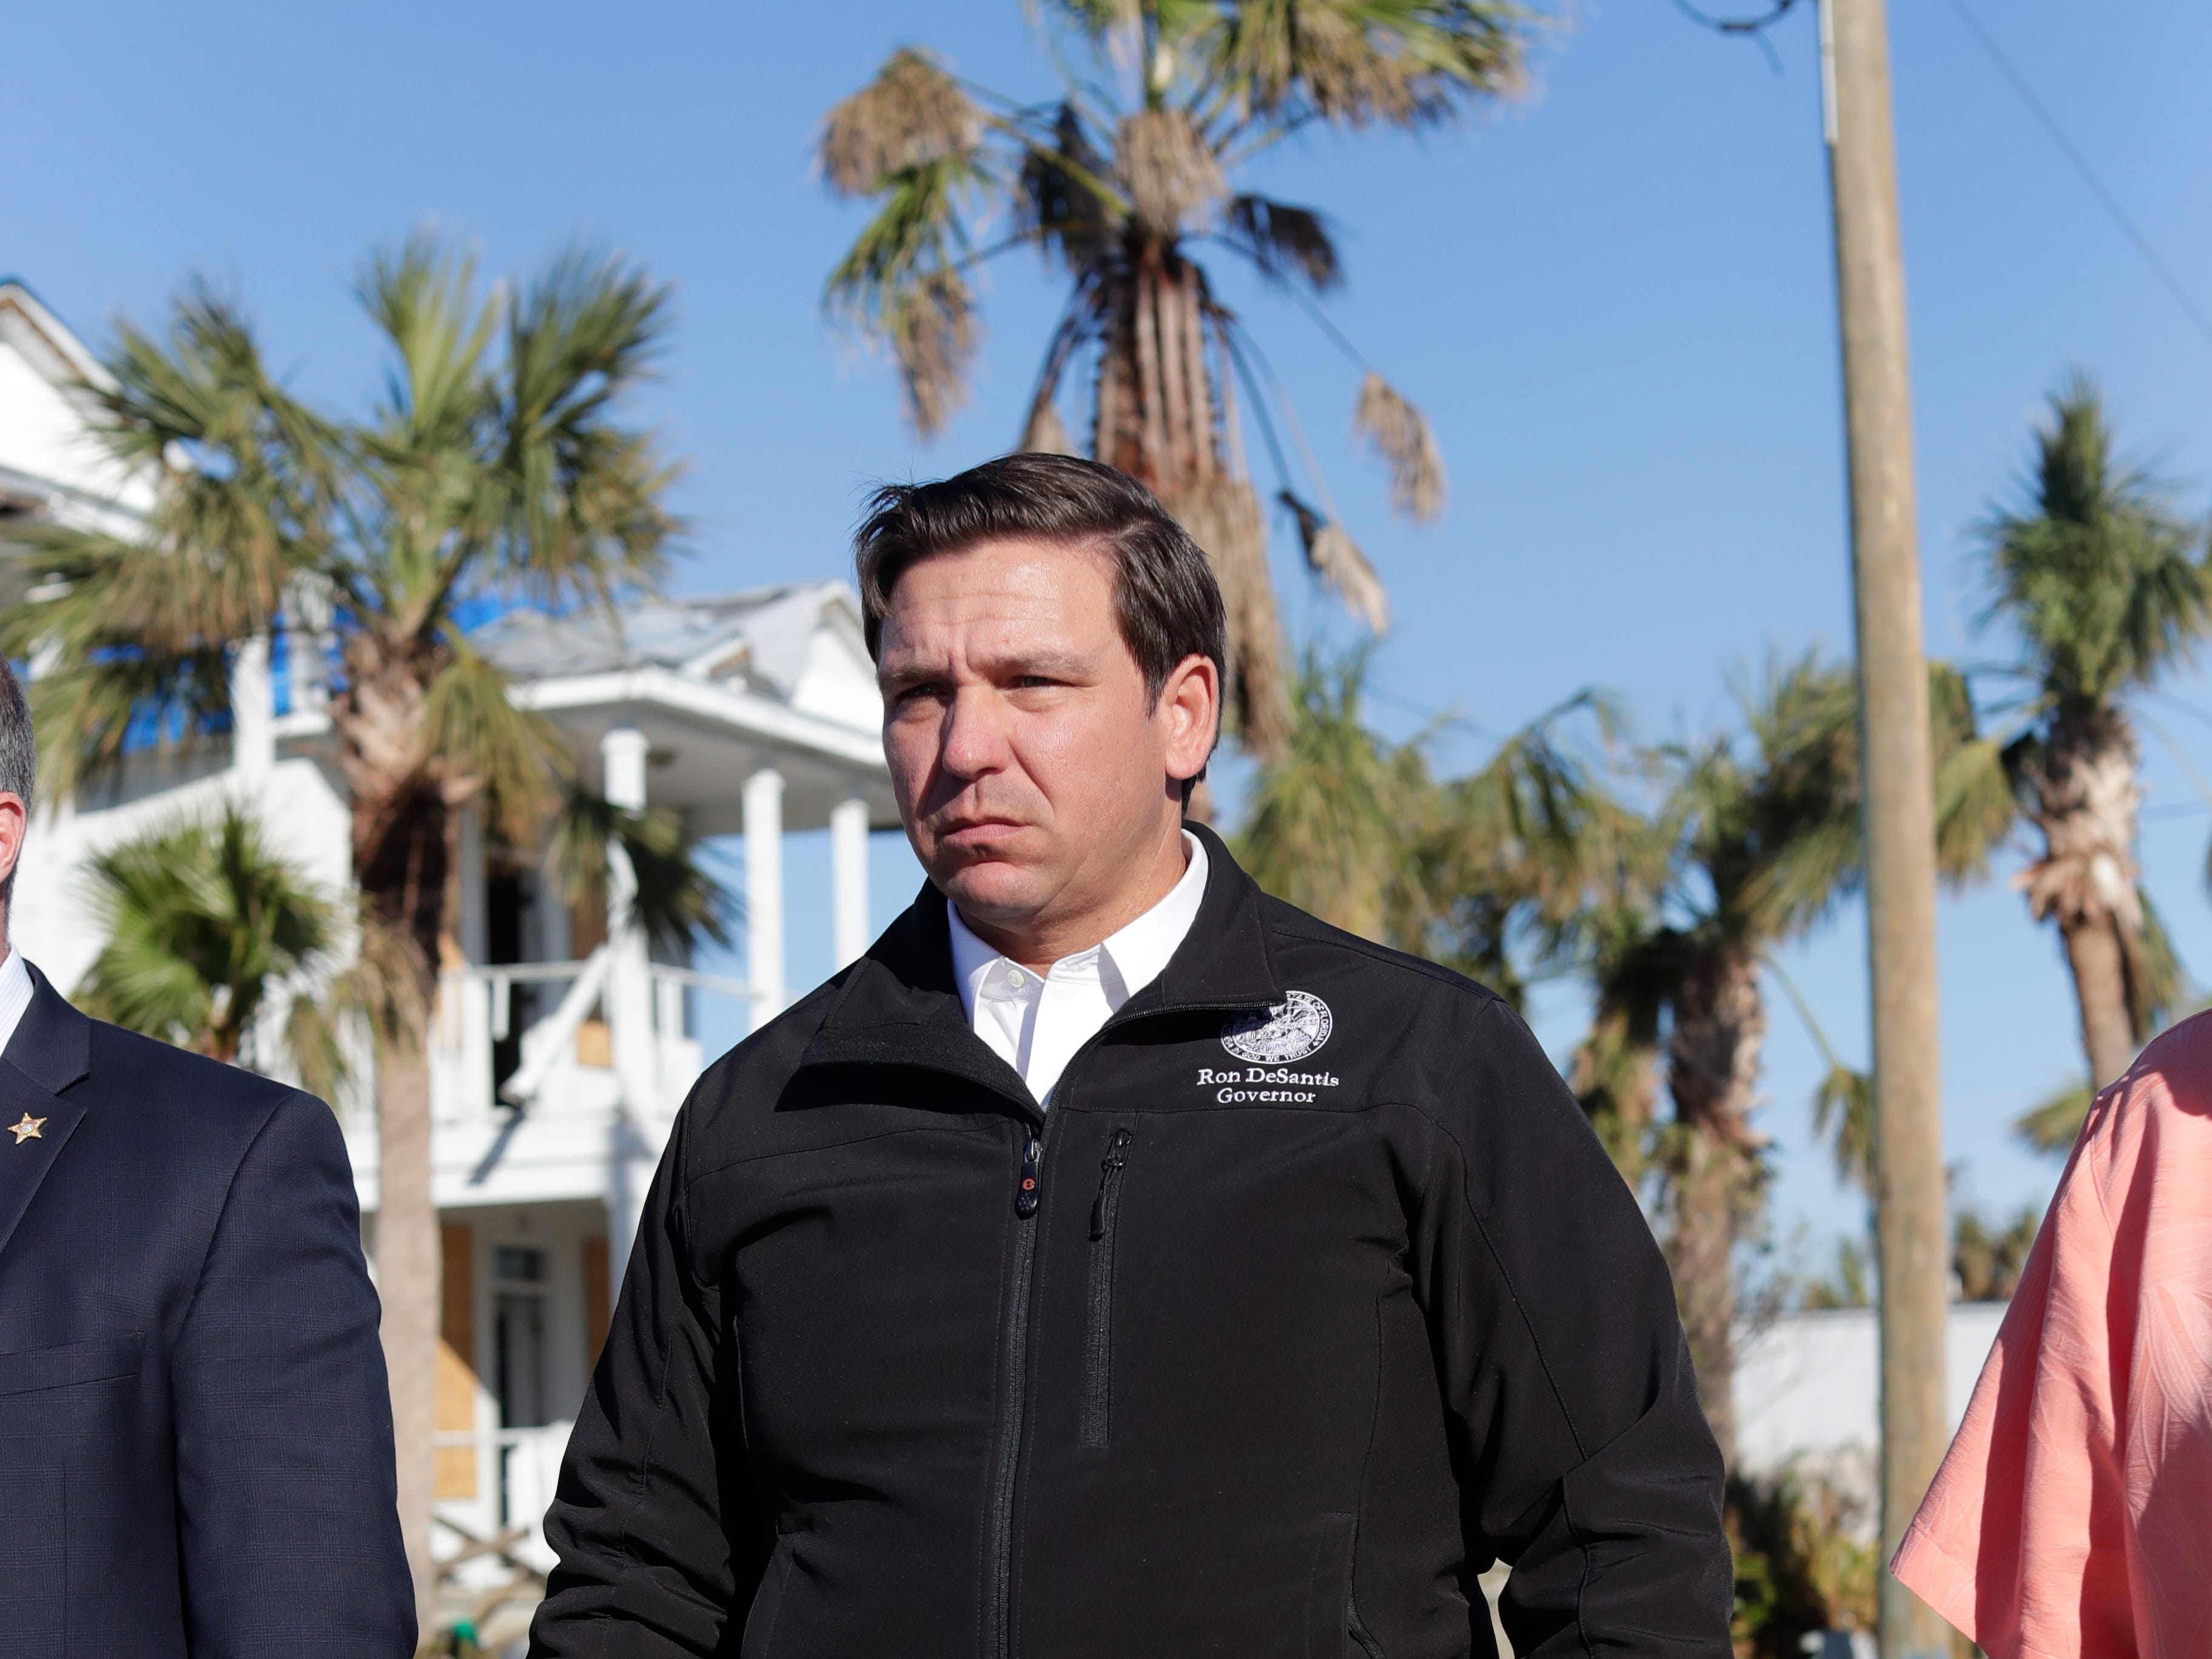 Gov. Ron DeSantis walks the streets of Mexico Beach, Wednesday, Jan. 9, 2019. Hurricane Michael left the panhandle in a total disarray on Oct. 10, 2018.